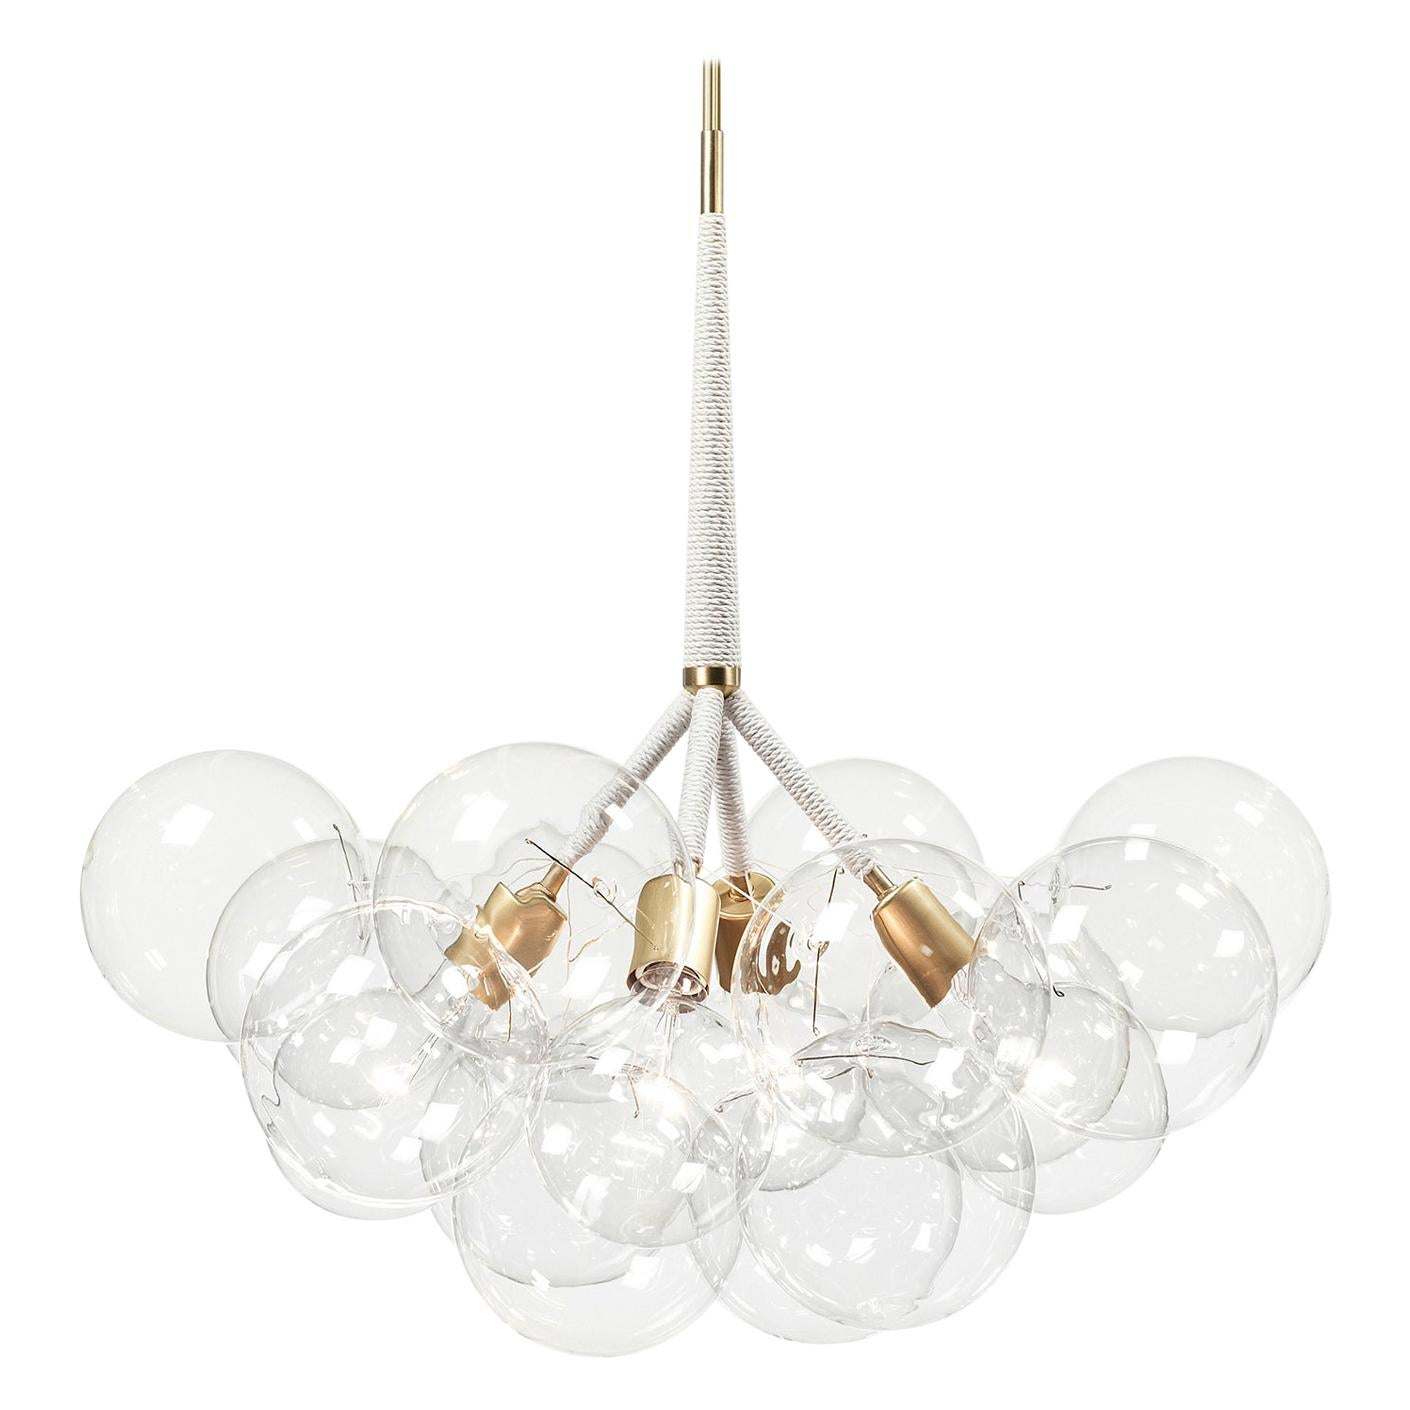 X-Large Bubble Chandelier in Natural Cotton and Satin Brass by Pelle